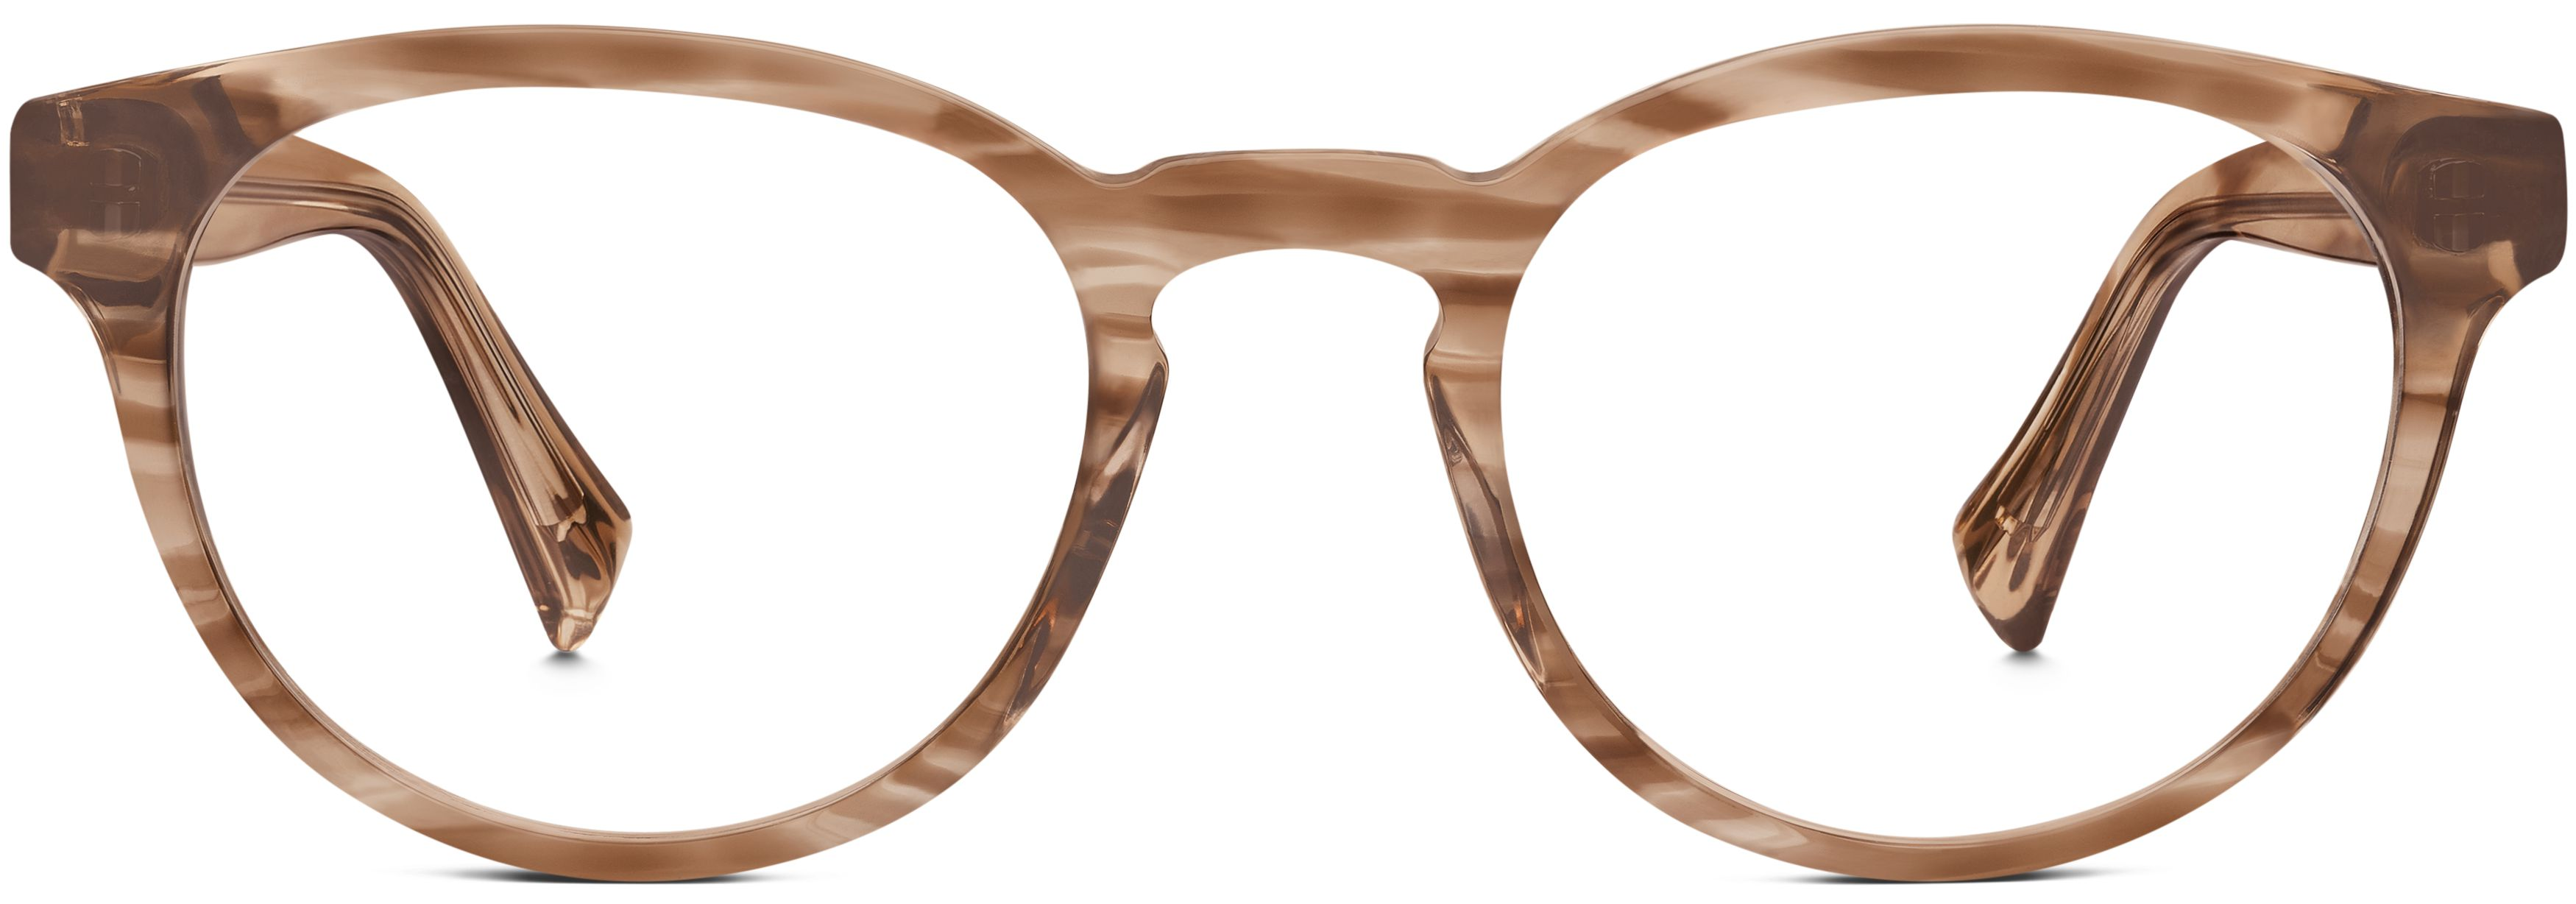 239129f81e5 Warby Parker Discontinued Frames - Best Photos Of Frame Truimage.Org